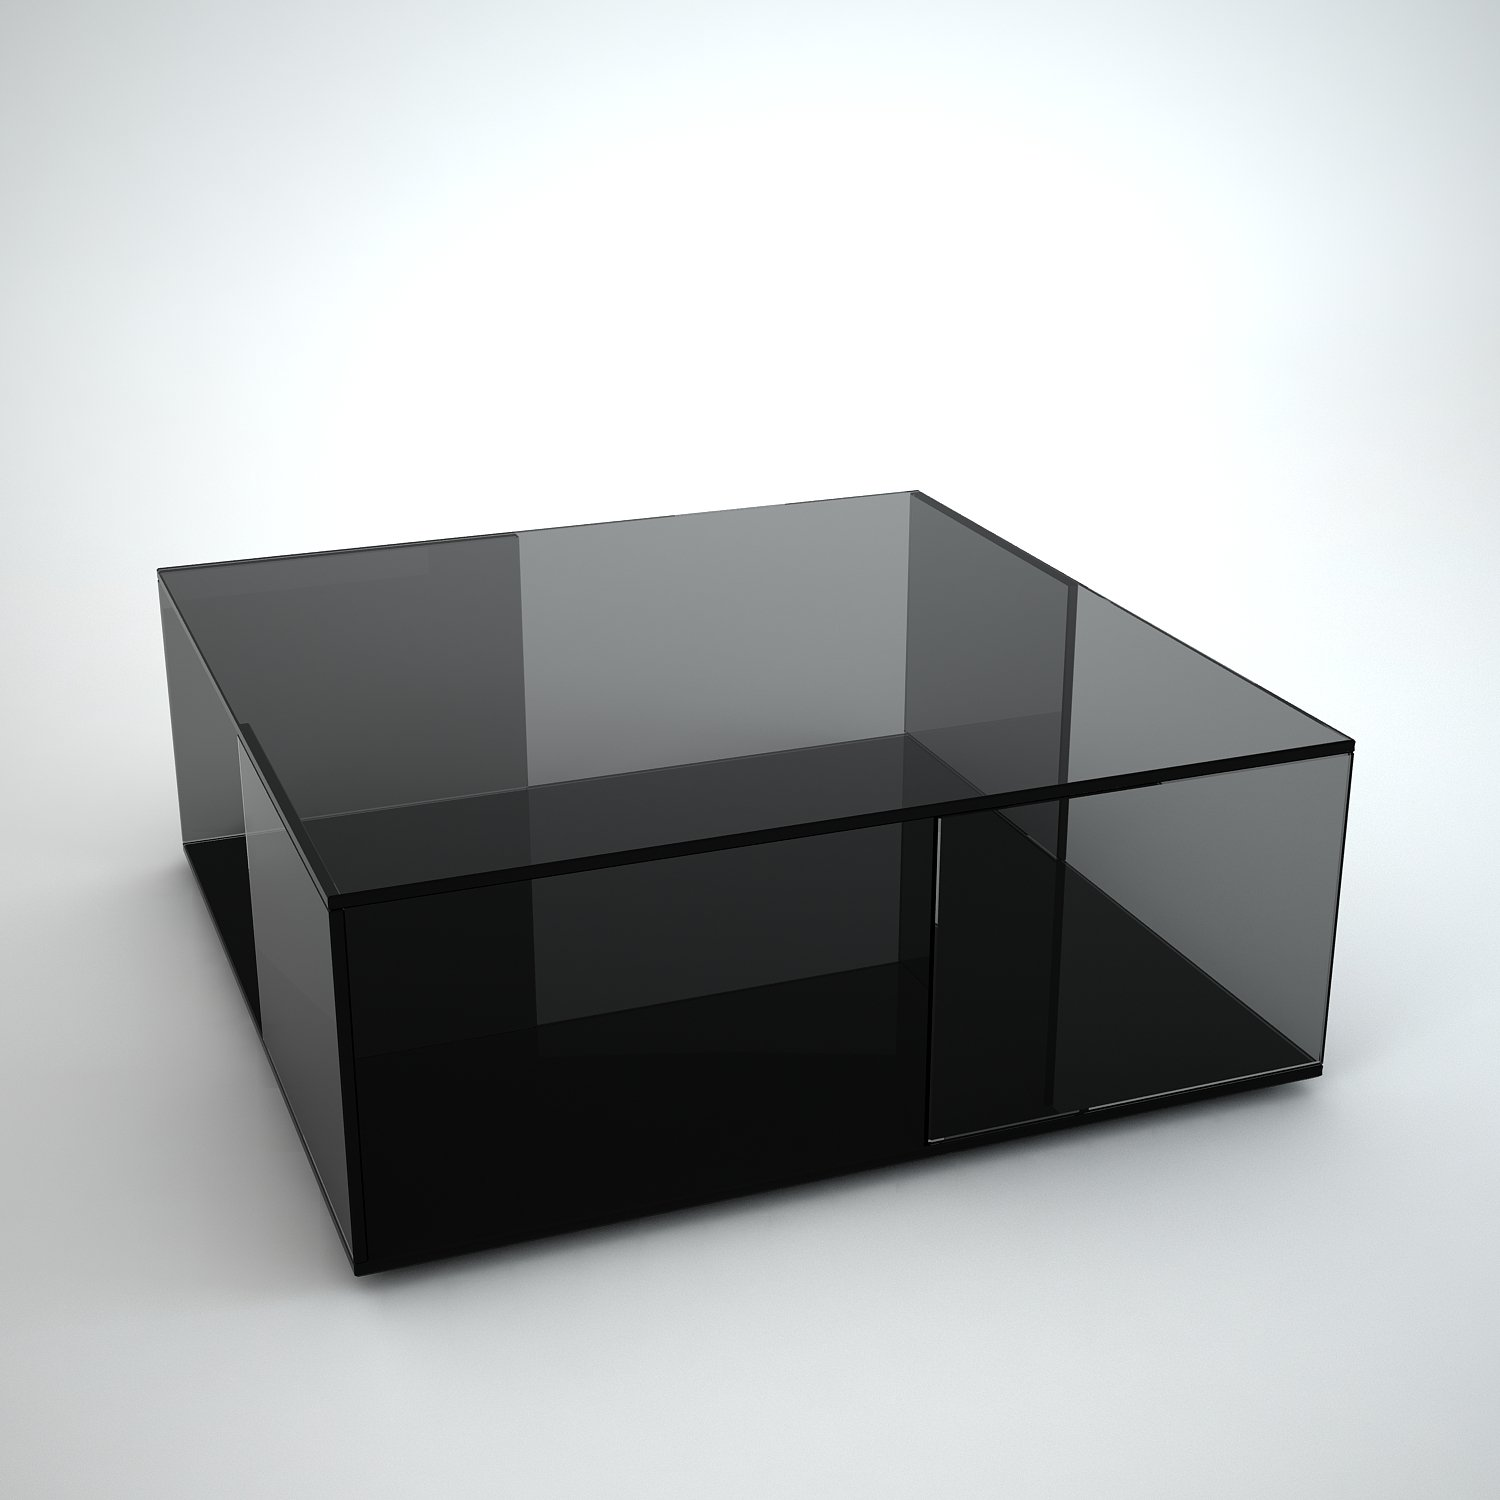 Tifino Square Grey Tint Glass Coffee Table By Klarity